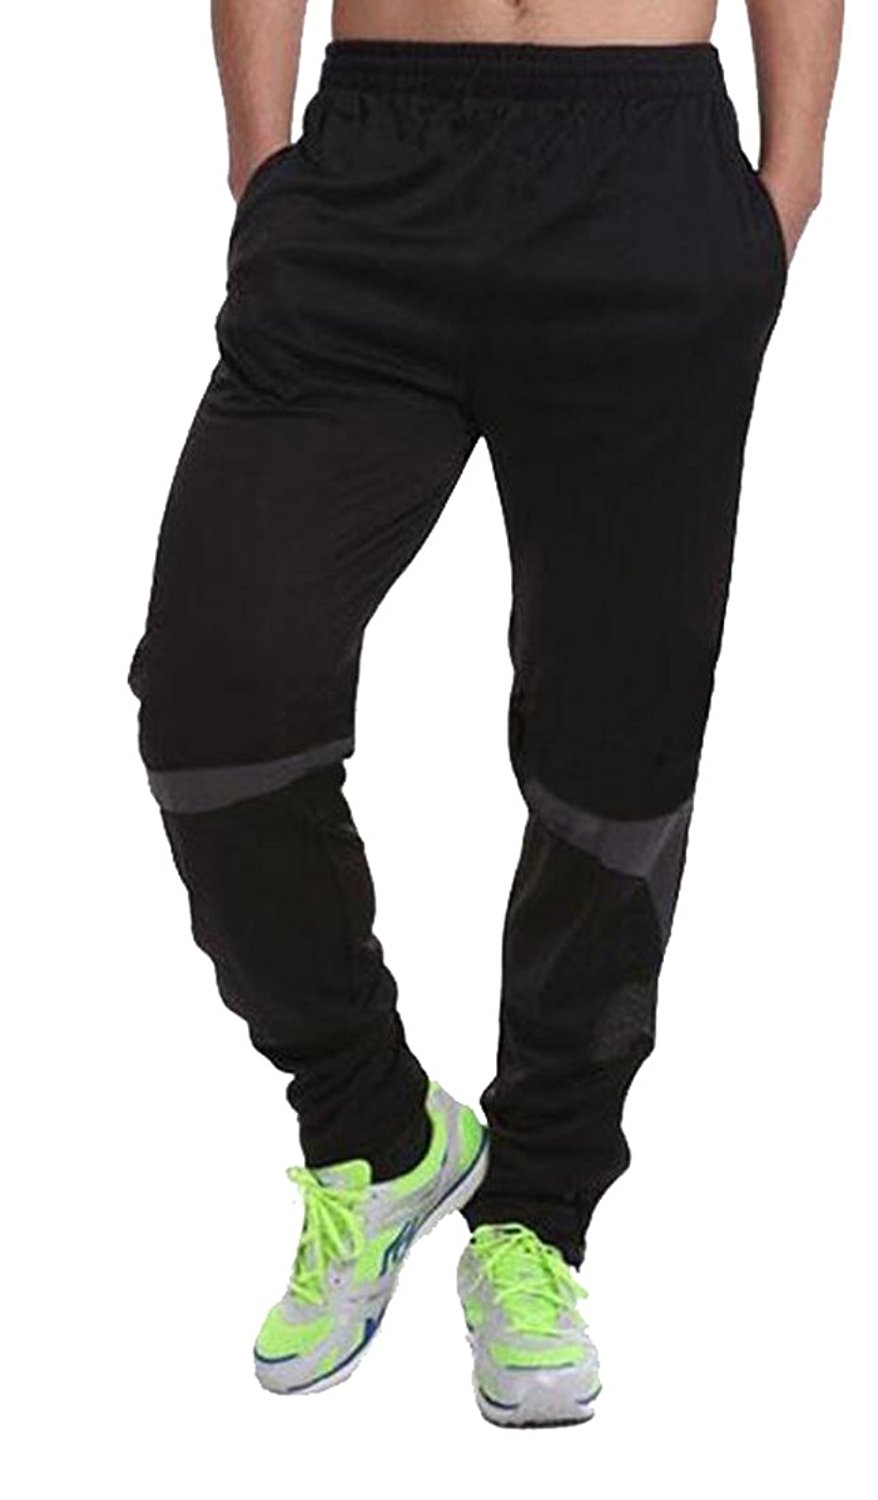 Heless Mens Harem Chinese Style Elastic Waist Casual Sport Jogging Pants Trousers